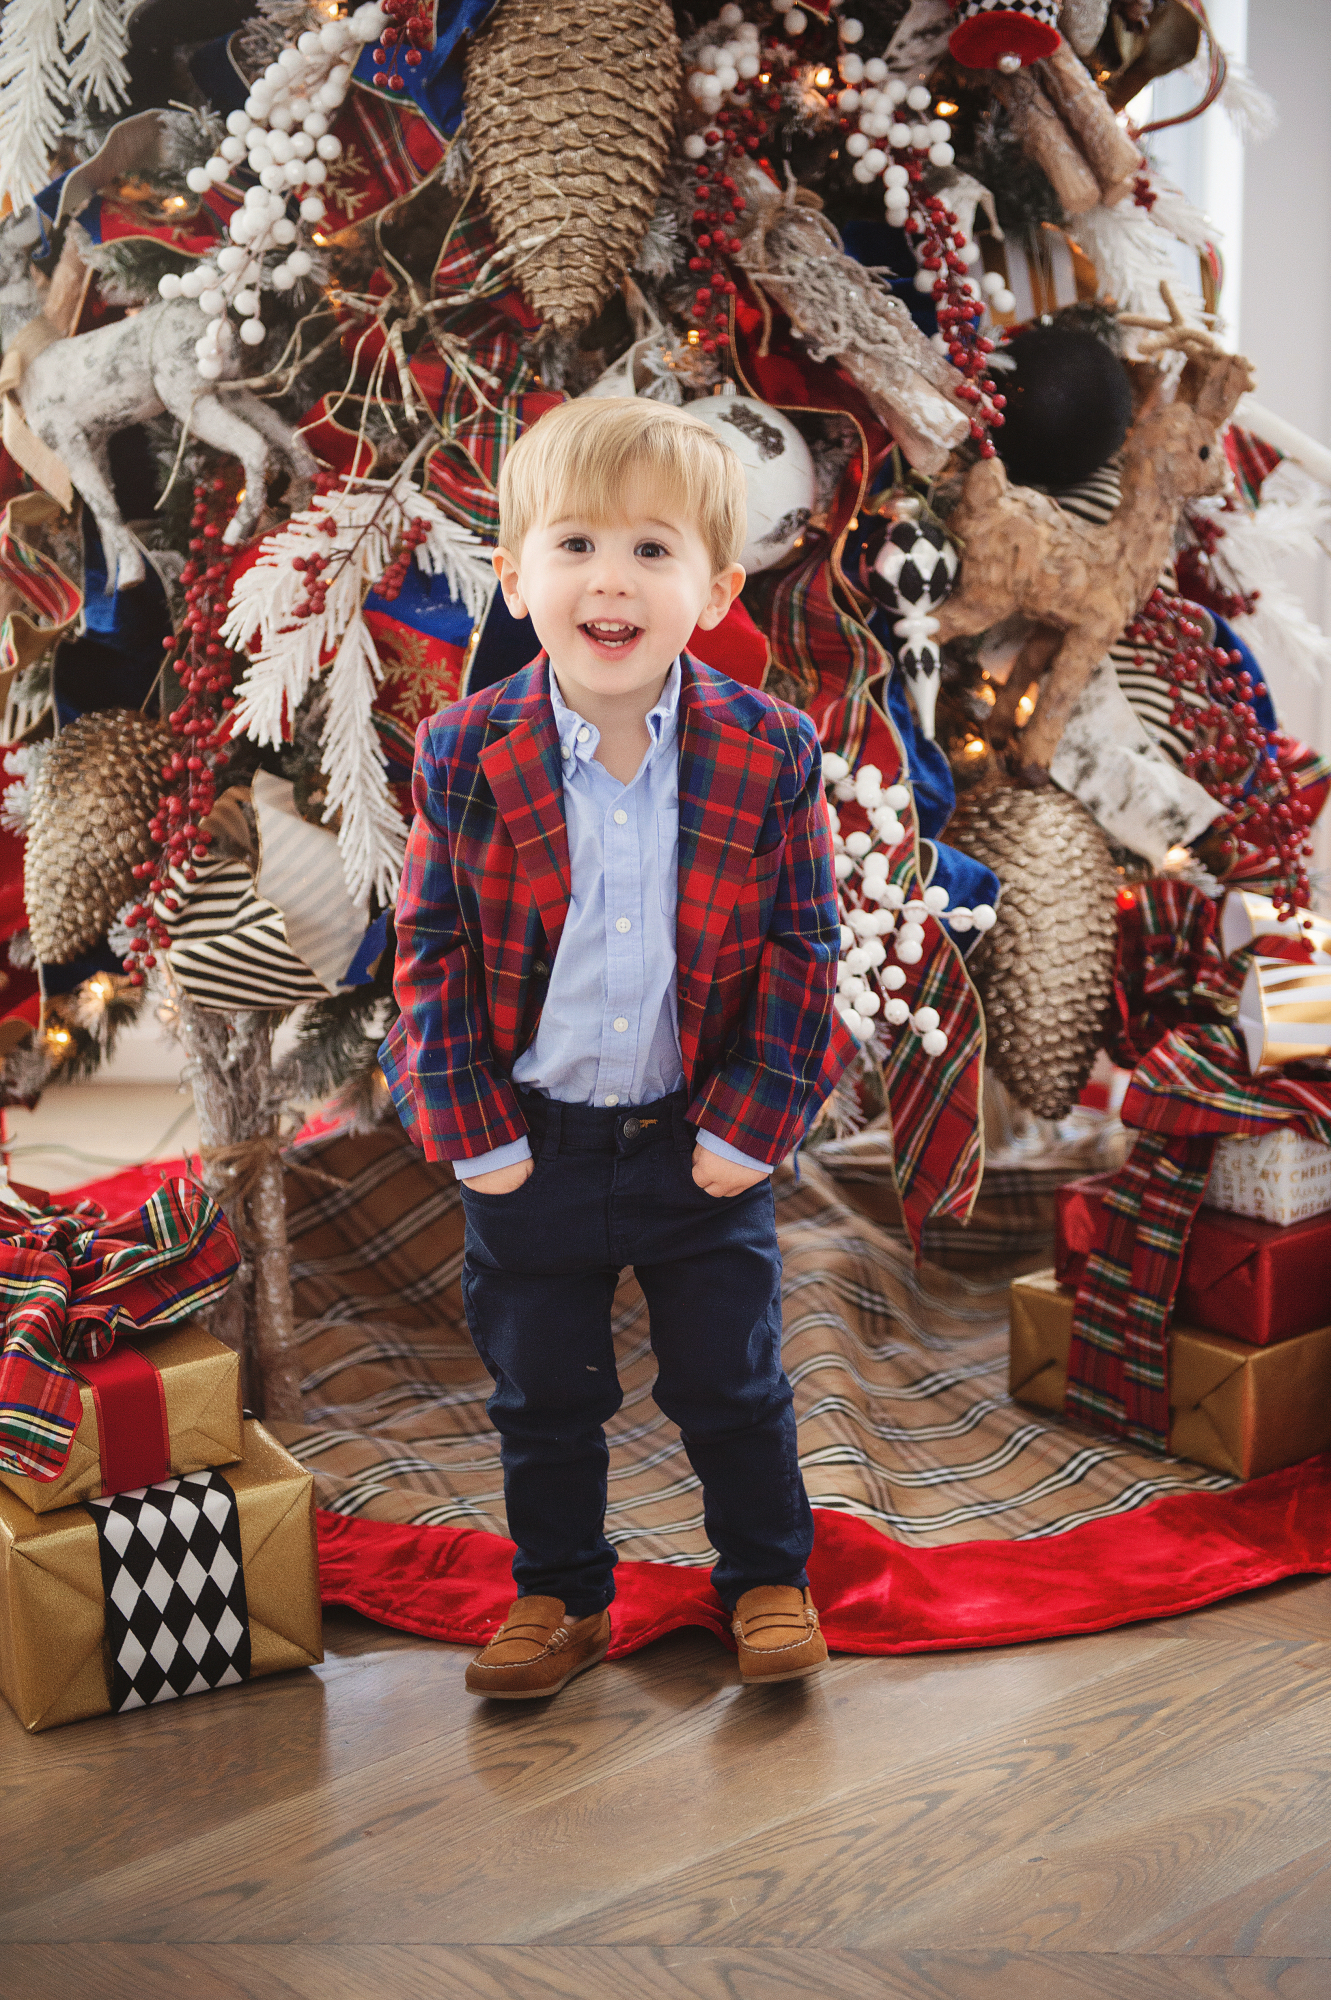 family Christmas card outfit inspiration, smocked Christmas dress baby, baby boy fashion Christmas, pinterest Christmas tree decor, shop hello holidays, Emily Gemma, the sweetest thing blog | Merry Christmas Wishes To You & Yours🎁❤️🎄 [Our Christmas Card 2019] by popular Oklahoma life and style blog, The Sweetest Thing: image of a little boy sitting in front of their Christmas tree and wearing Zara BASIC SERGED SKINNY JEANS, Zara  LEATHER LOAFERS, Janie and Jack POPLIN SHIRT, Janie and Jack PLAID WOOL BLAZER.